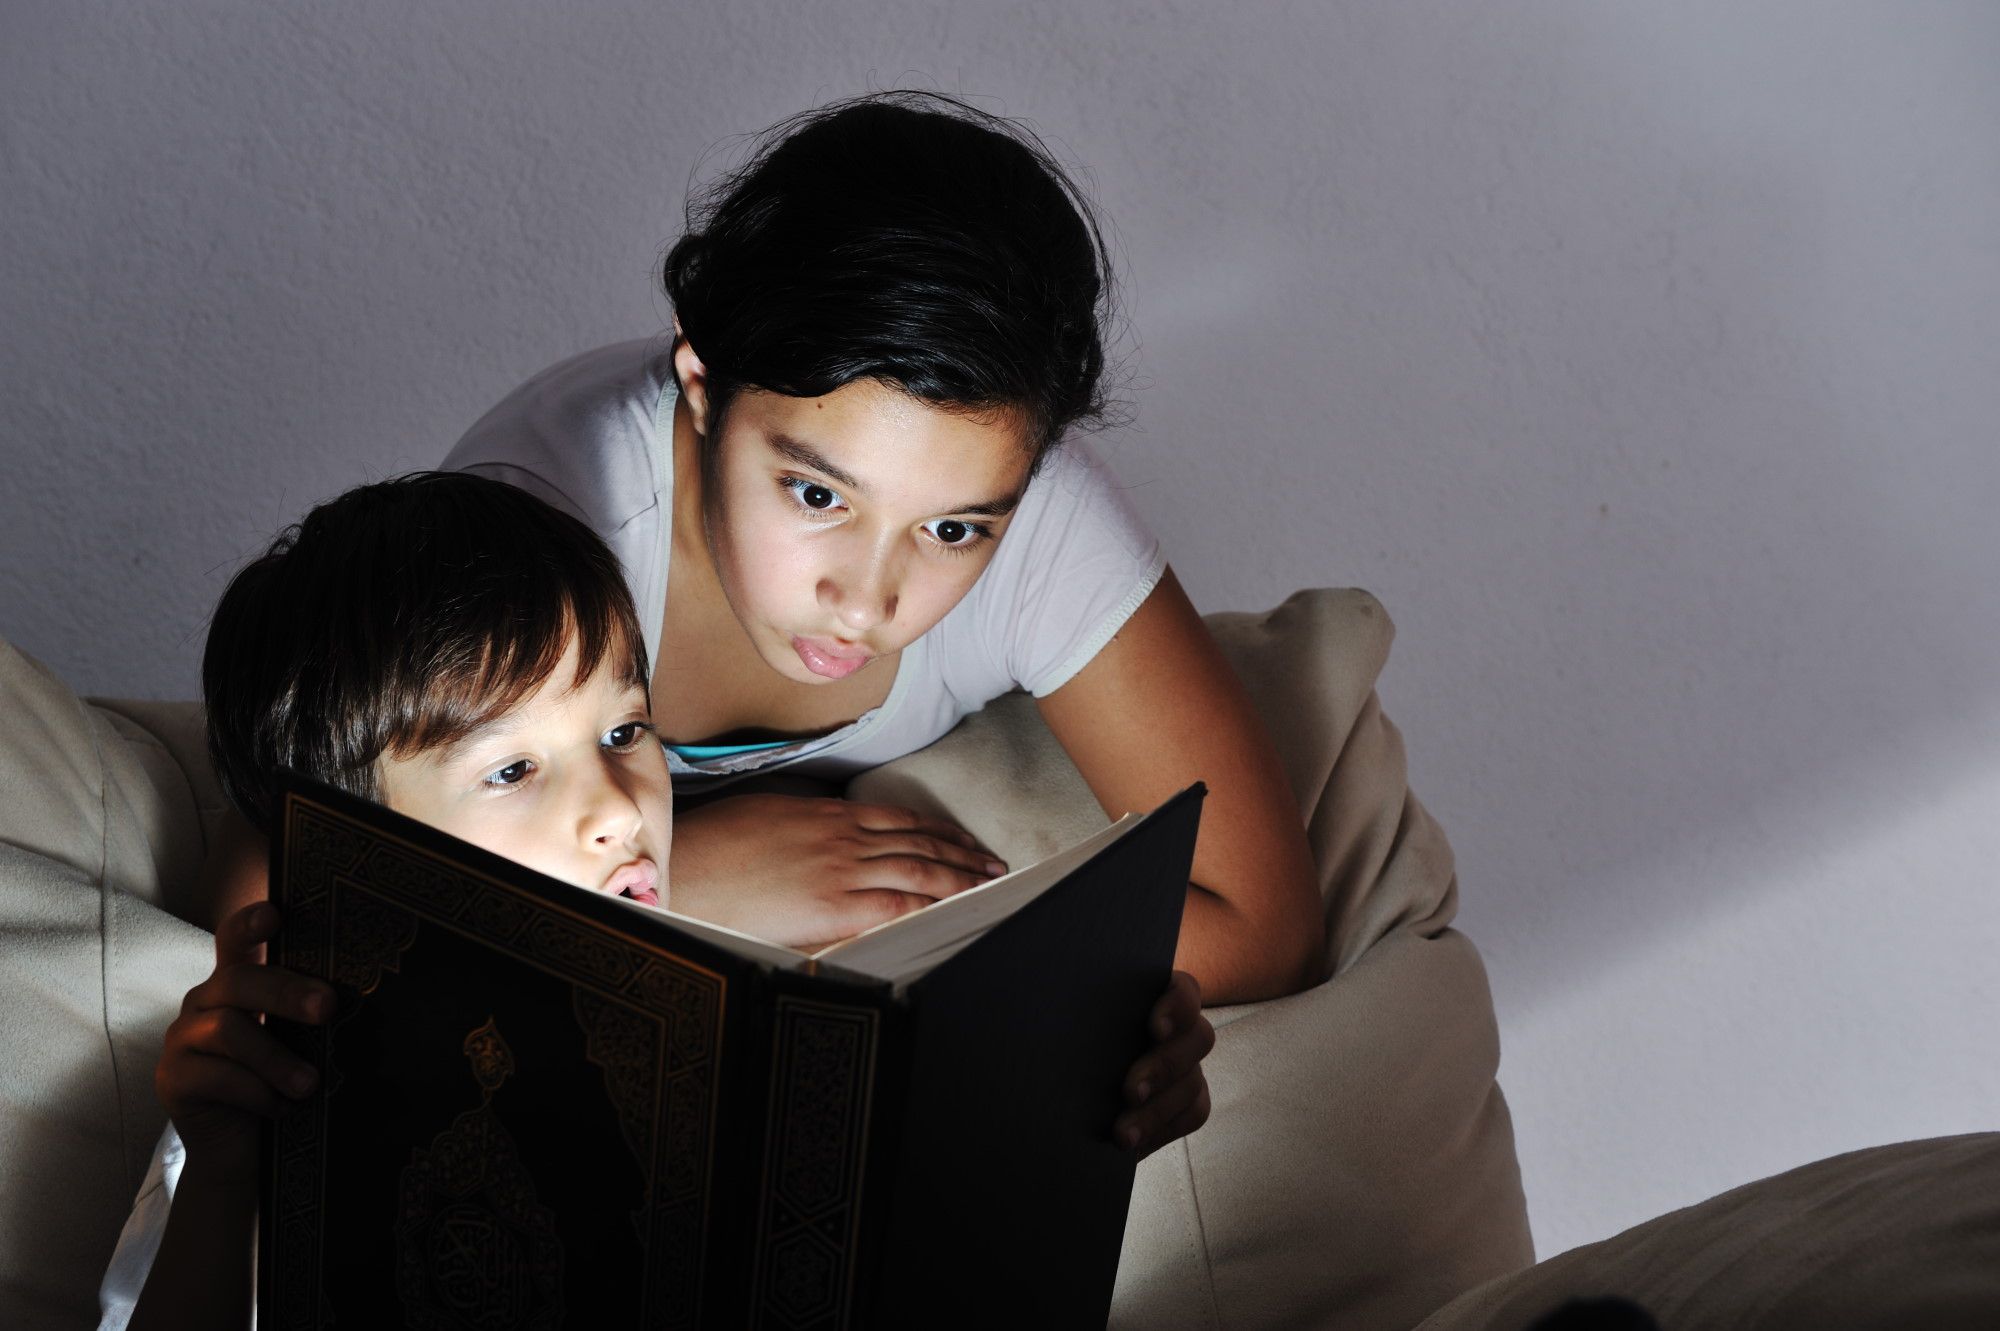 brother and sister reading light book at night